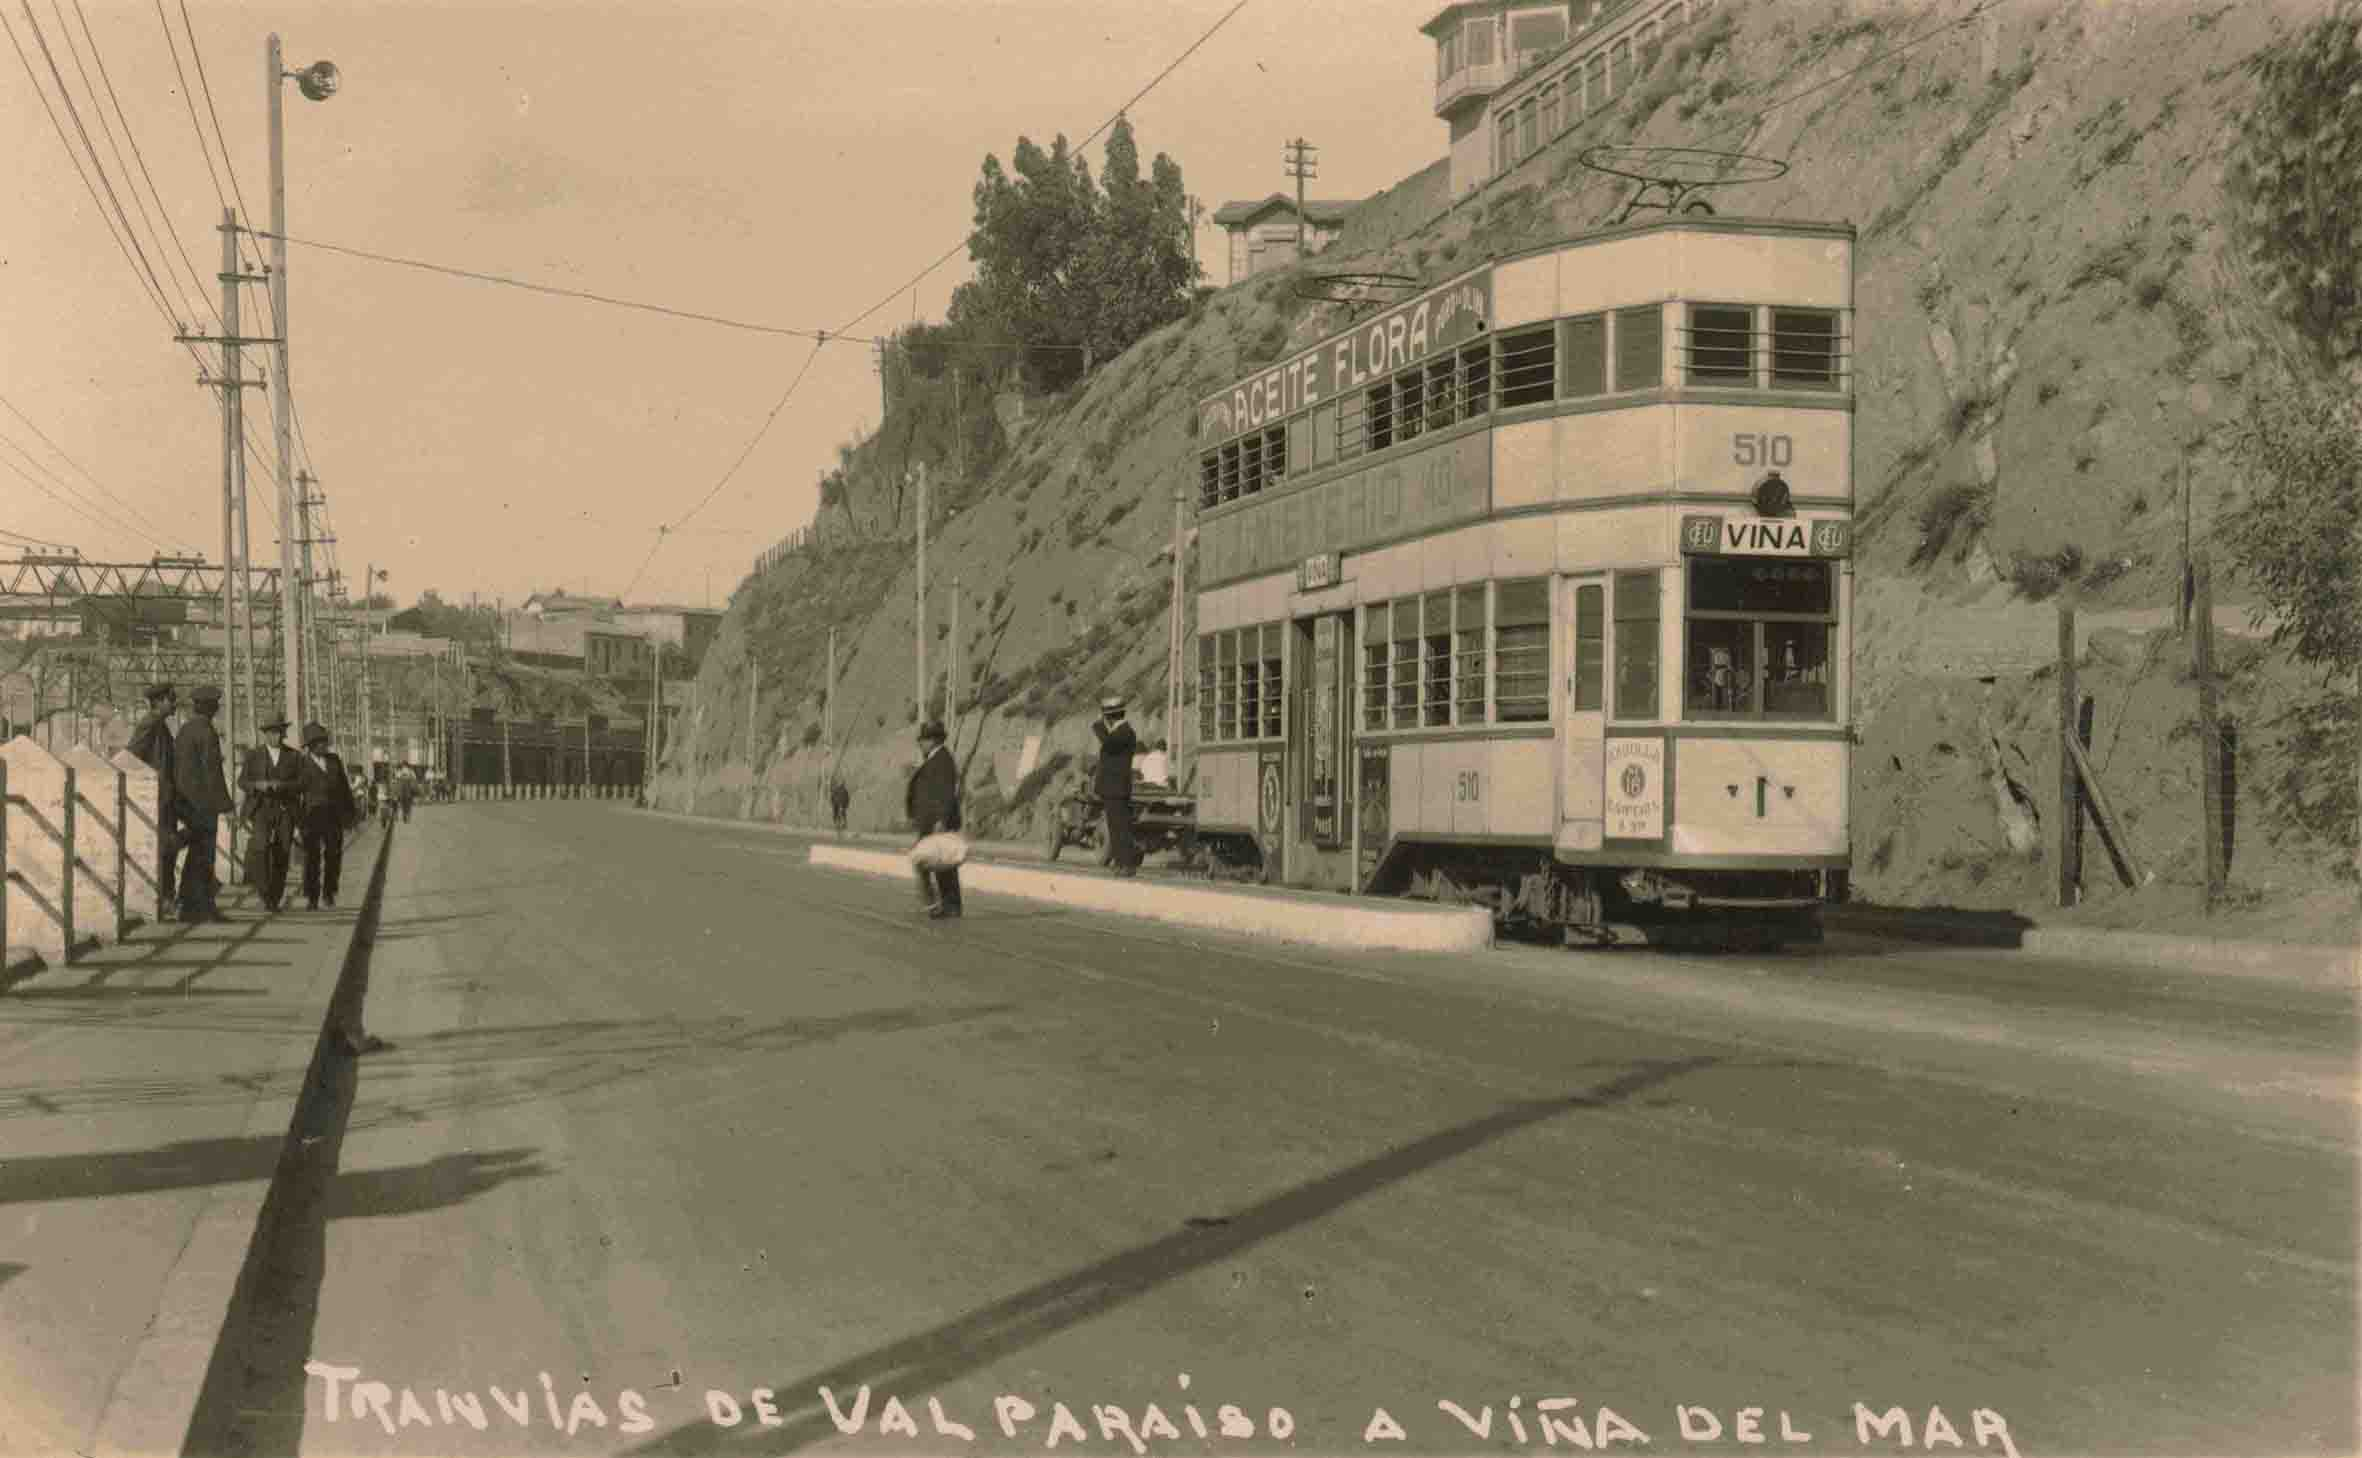 Enterreno - Fotos históricas de chile - fotos antiguas de Chile - Tranvía Viña - Valparaíso, ca. 1930